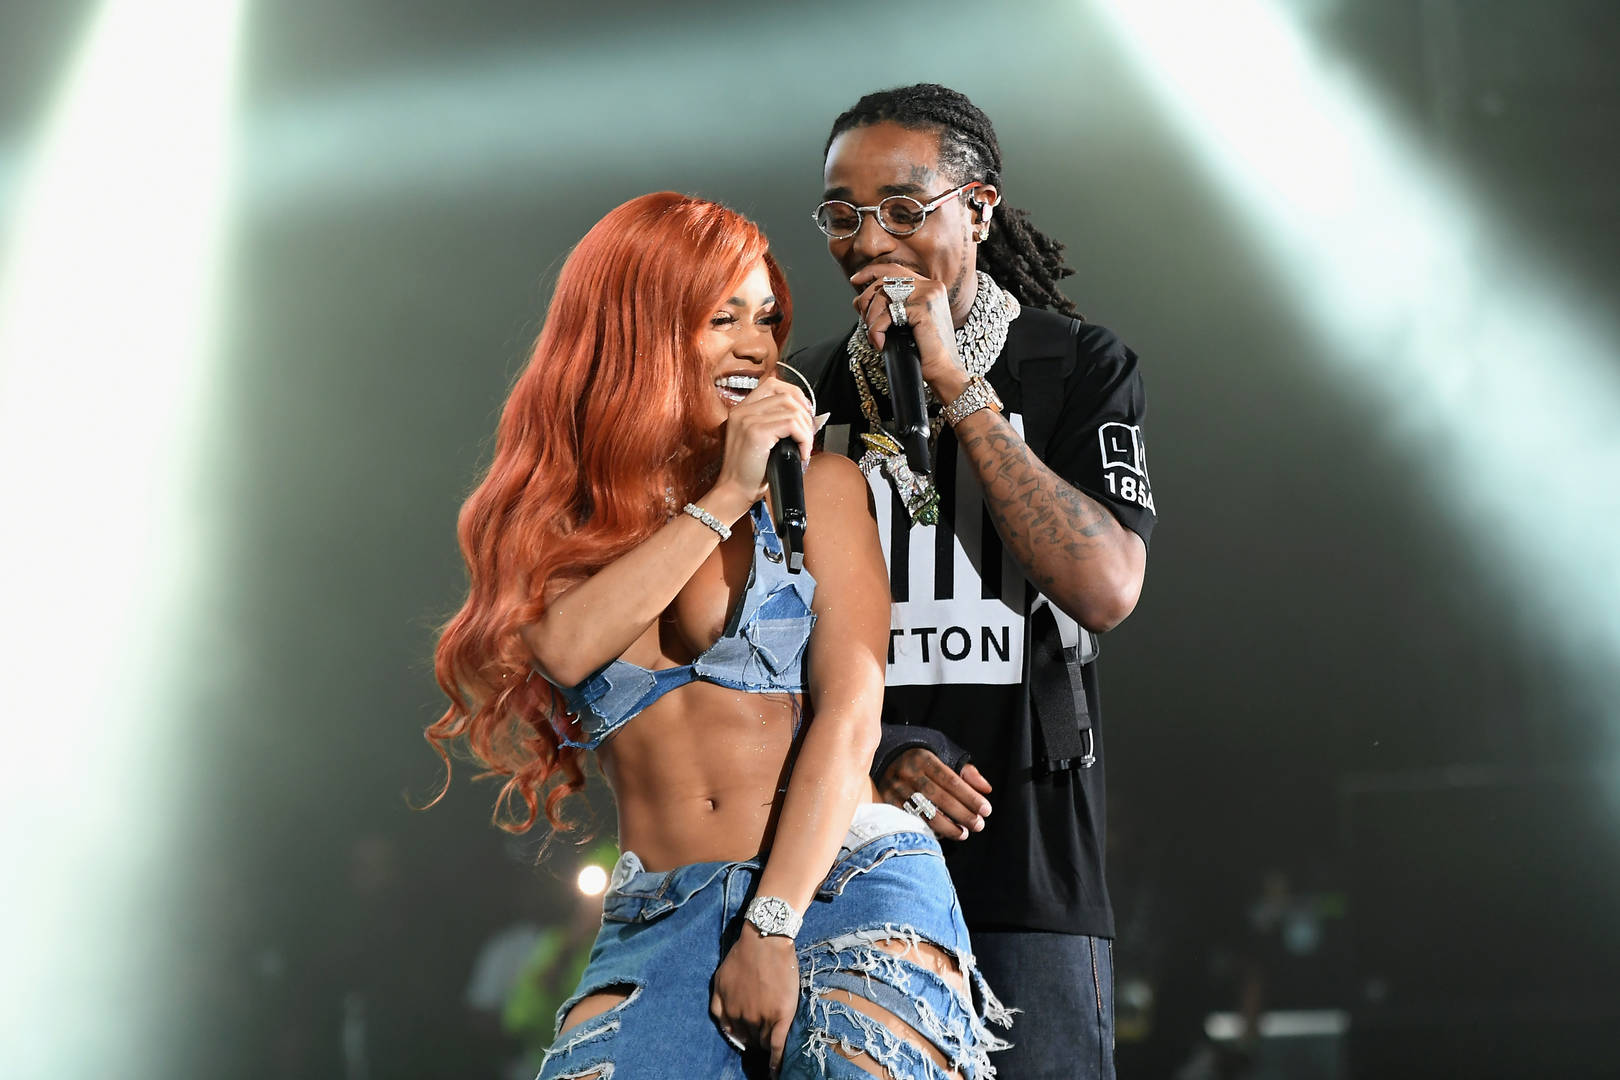 Saweetie Quavo straddle lap dance birthday post message couple cute adorable sweet baby Quavo T-shirt Migos